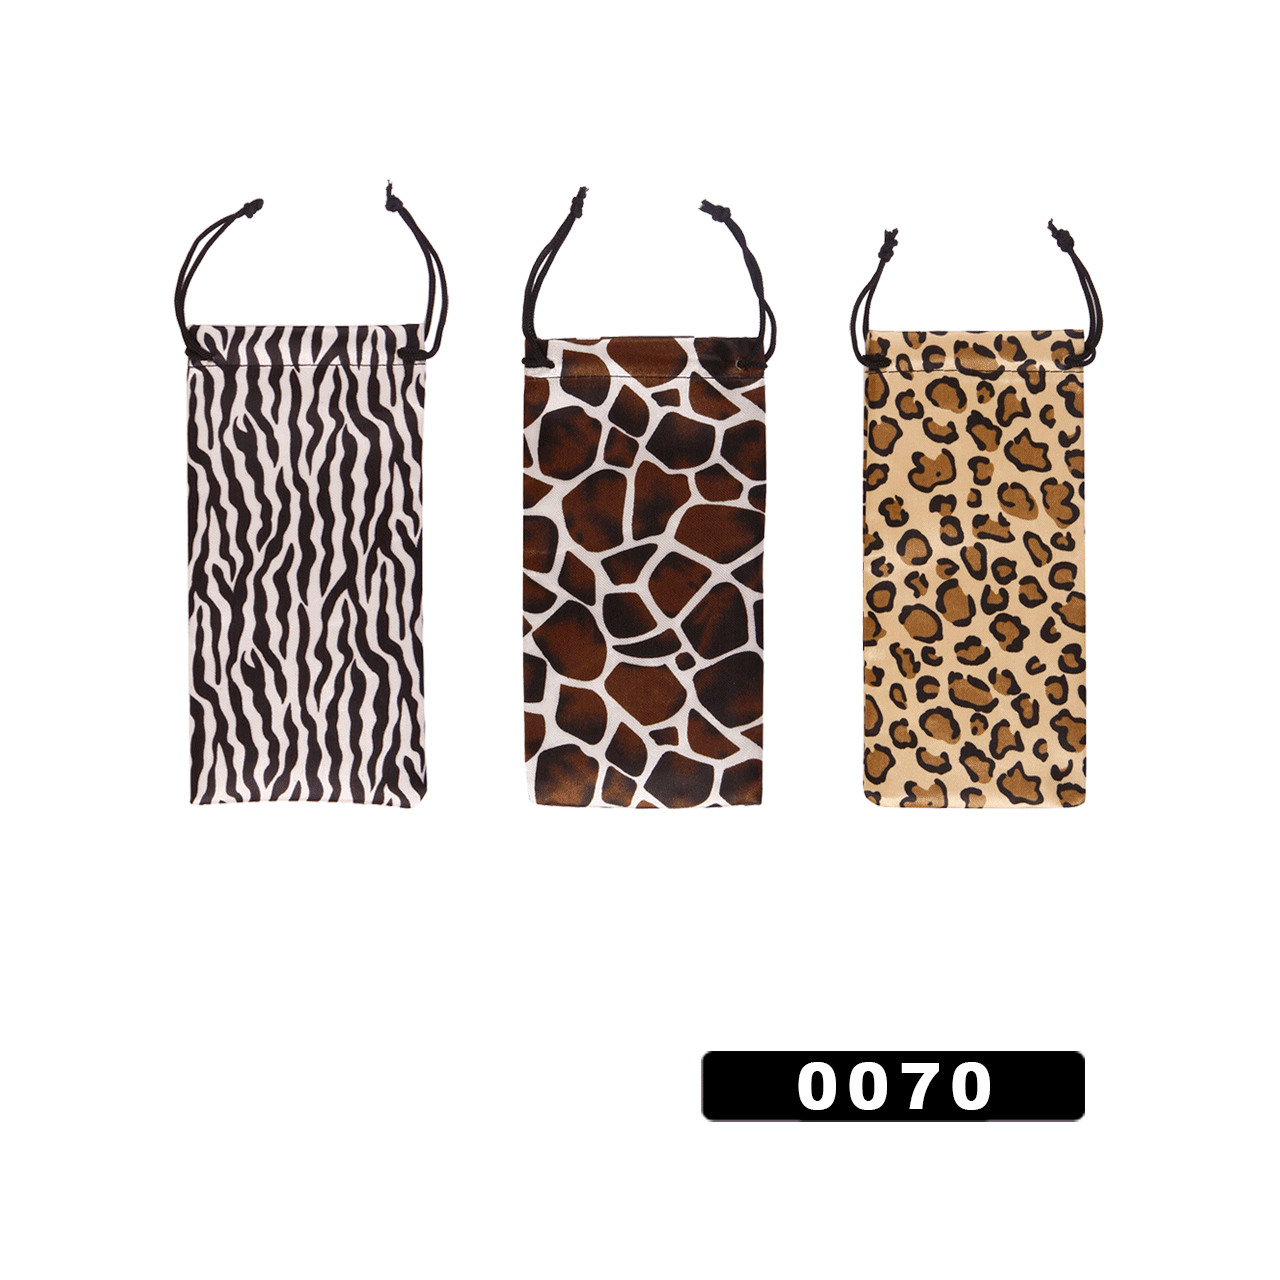 Sunglass Draw String Bags 0070 (12 pcs.) Animal Print!